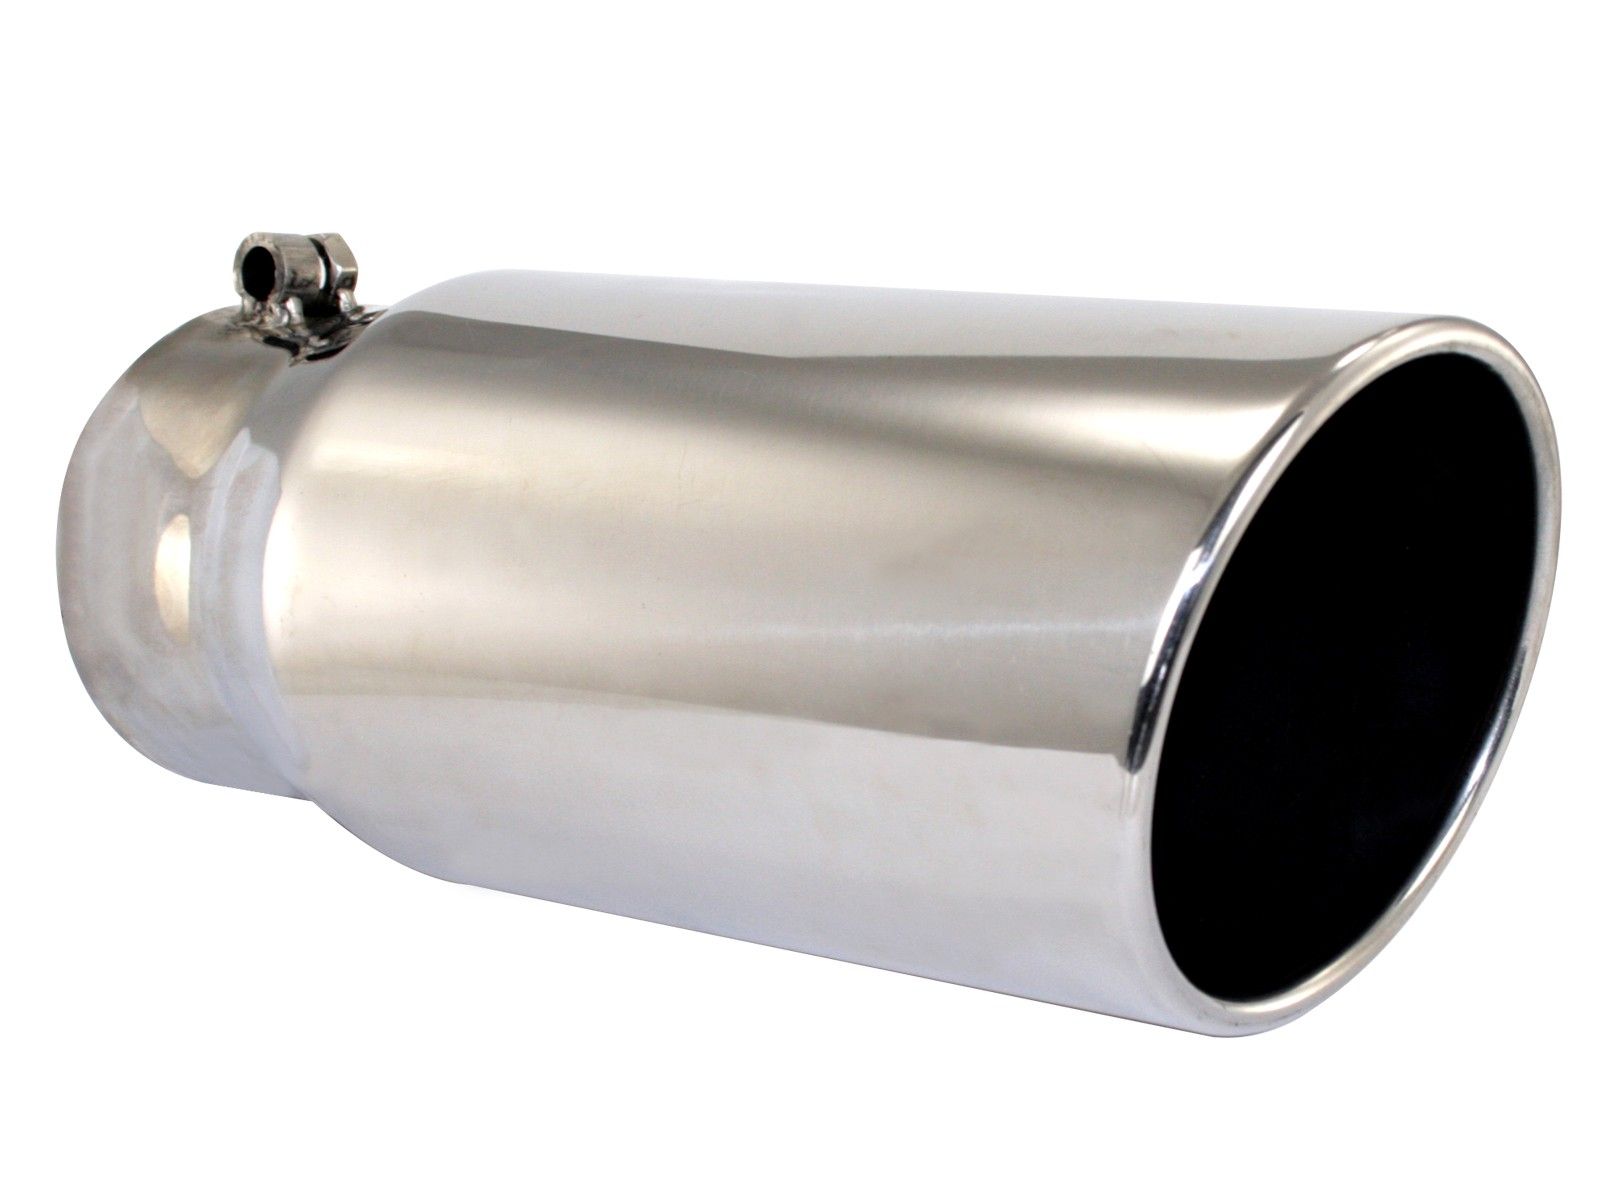 exhaust tail pipe tip mach force xp 4 inch inlet diameter 5 inch outlet diameter stainless steel round slant cut rolled edge 12 inch length